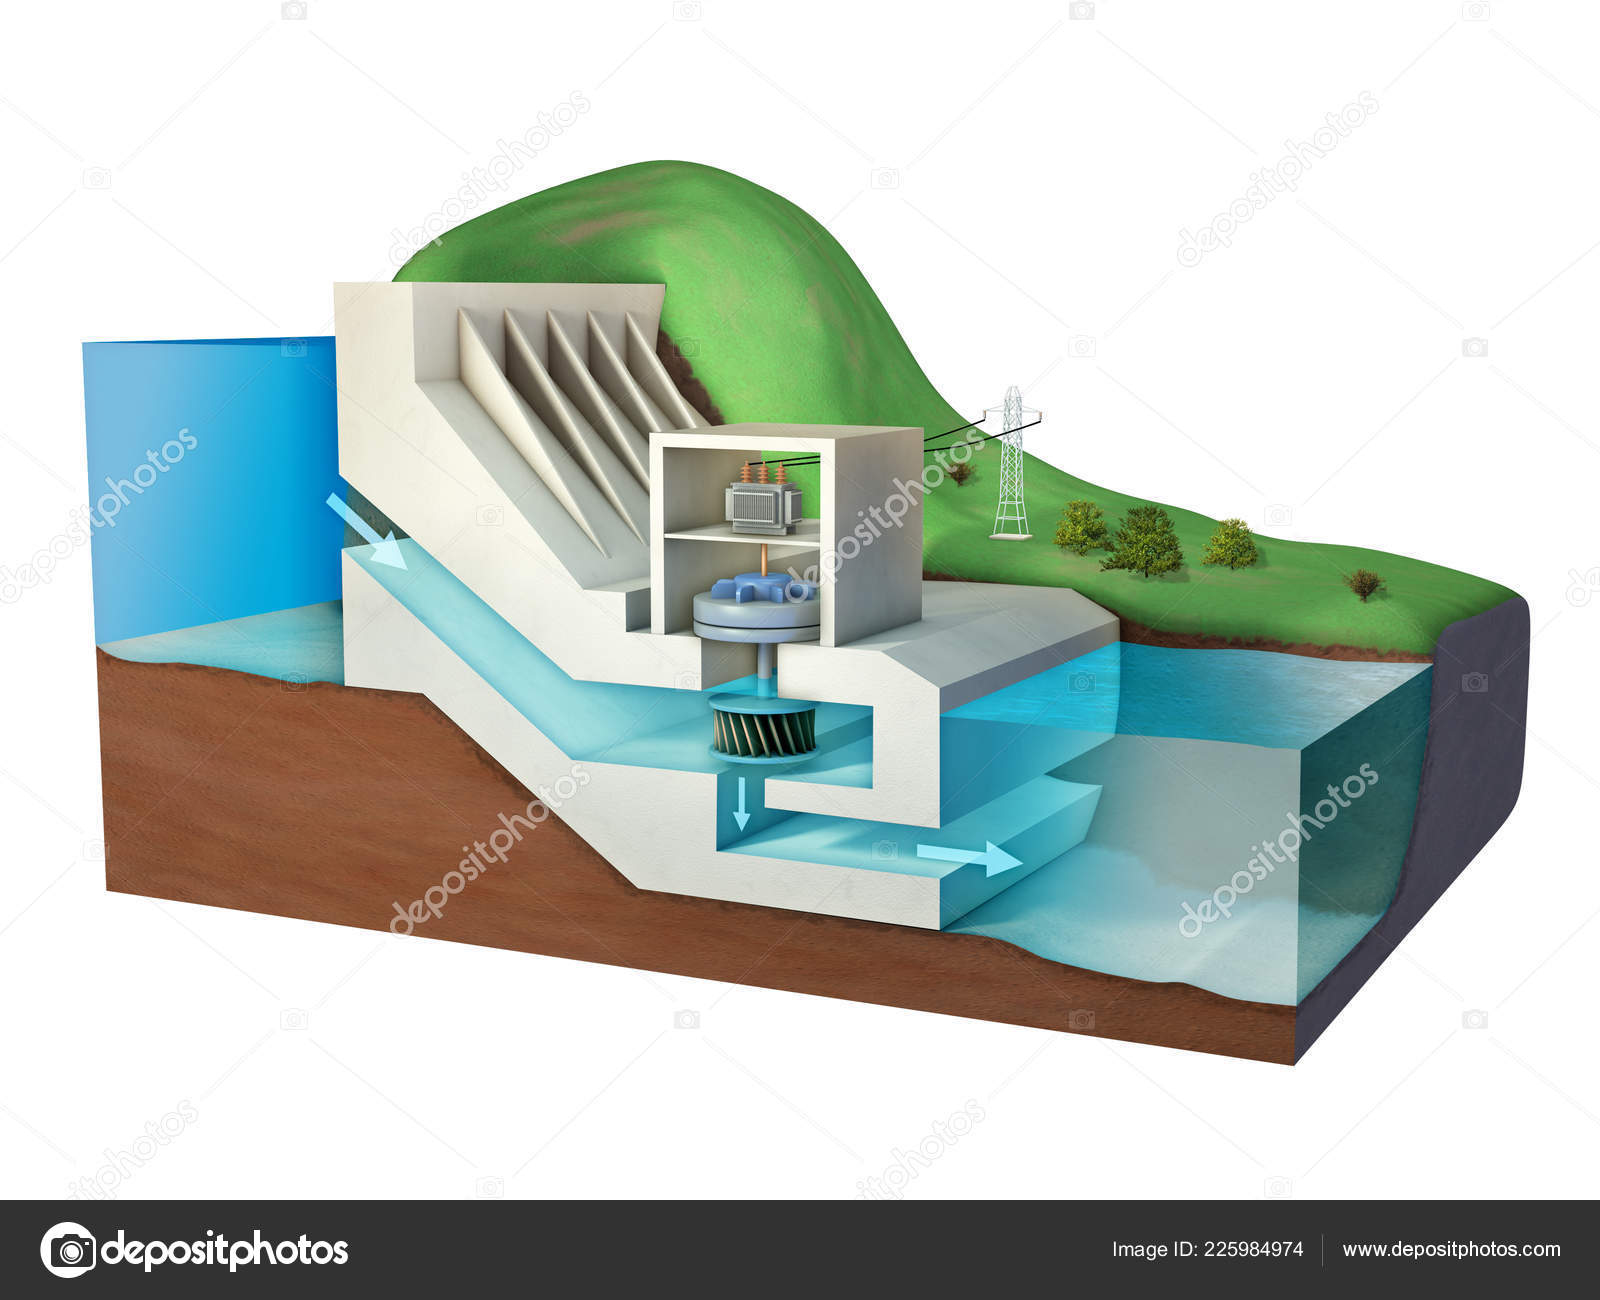 Hydroelectric Power Plant Diagram Illustration ⬇ Stock Photo, Image by ©  Andreus #225984974 | Hydroelectric Power Plant Diagram |  | Depositphotos